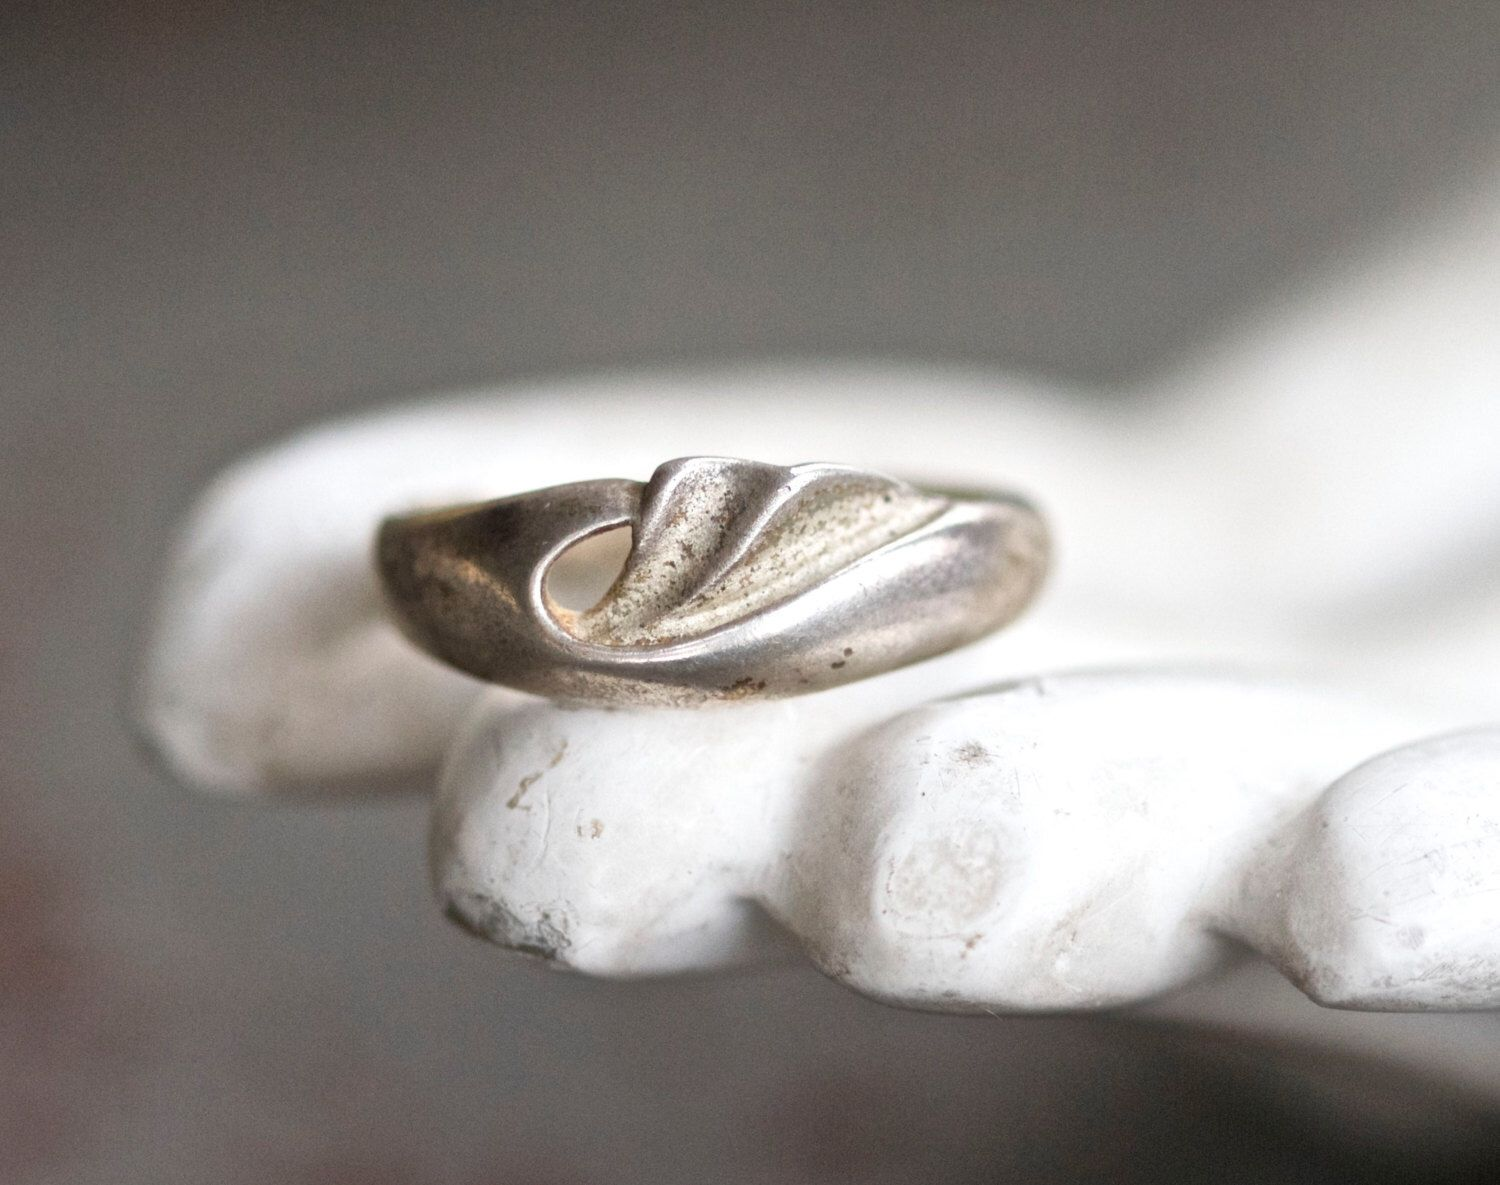 Art Nouveau Ring - Sterling Silver Stylized Wave Ring - Size 9 by Meanglean on Etsy https://www.etsy.com/listing/247239615/art-nouveau-ring-sterling-silver